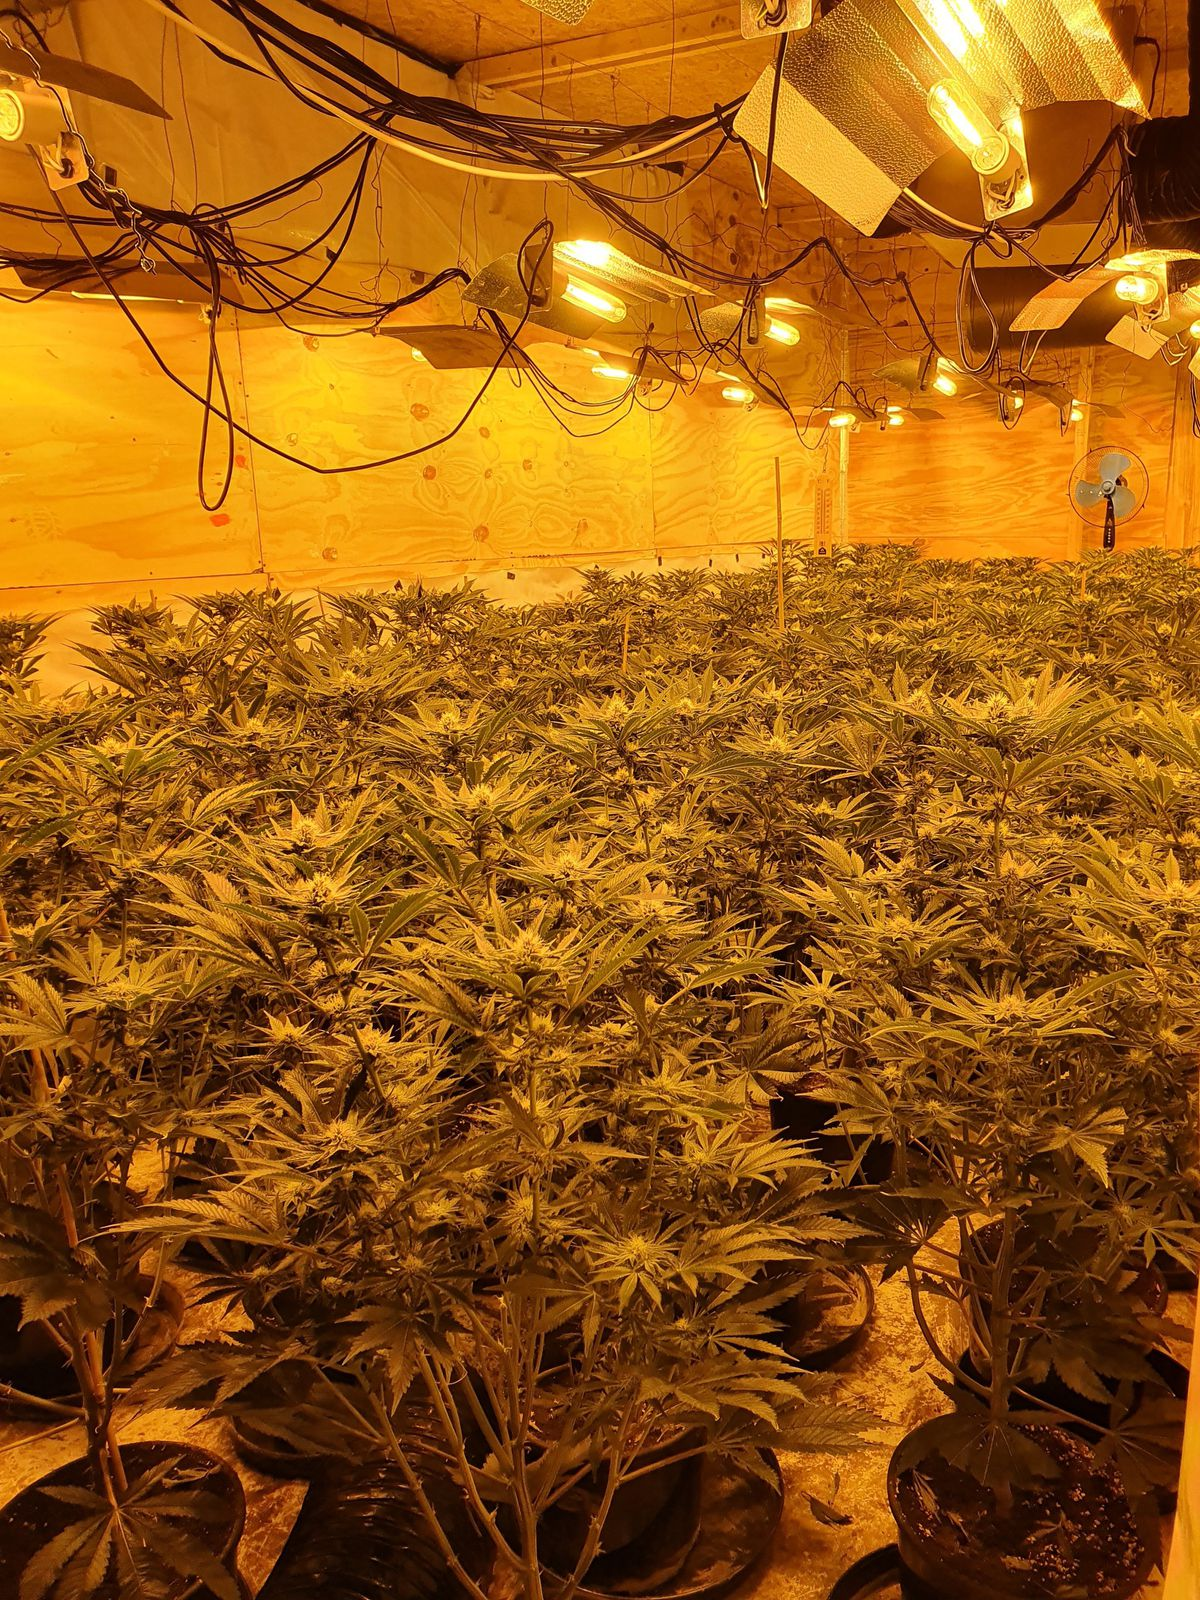 Police found approximately 600 plants inside the industrial unit (Image: @BrierleyHillWMP)